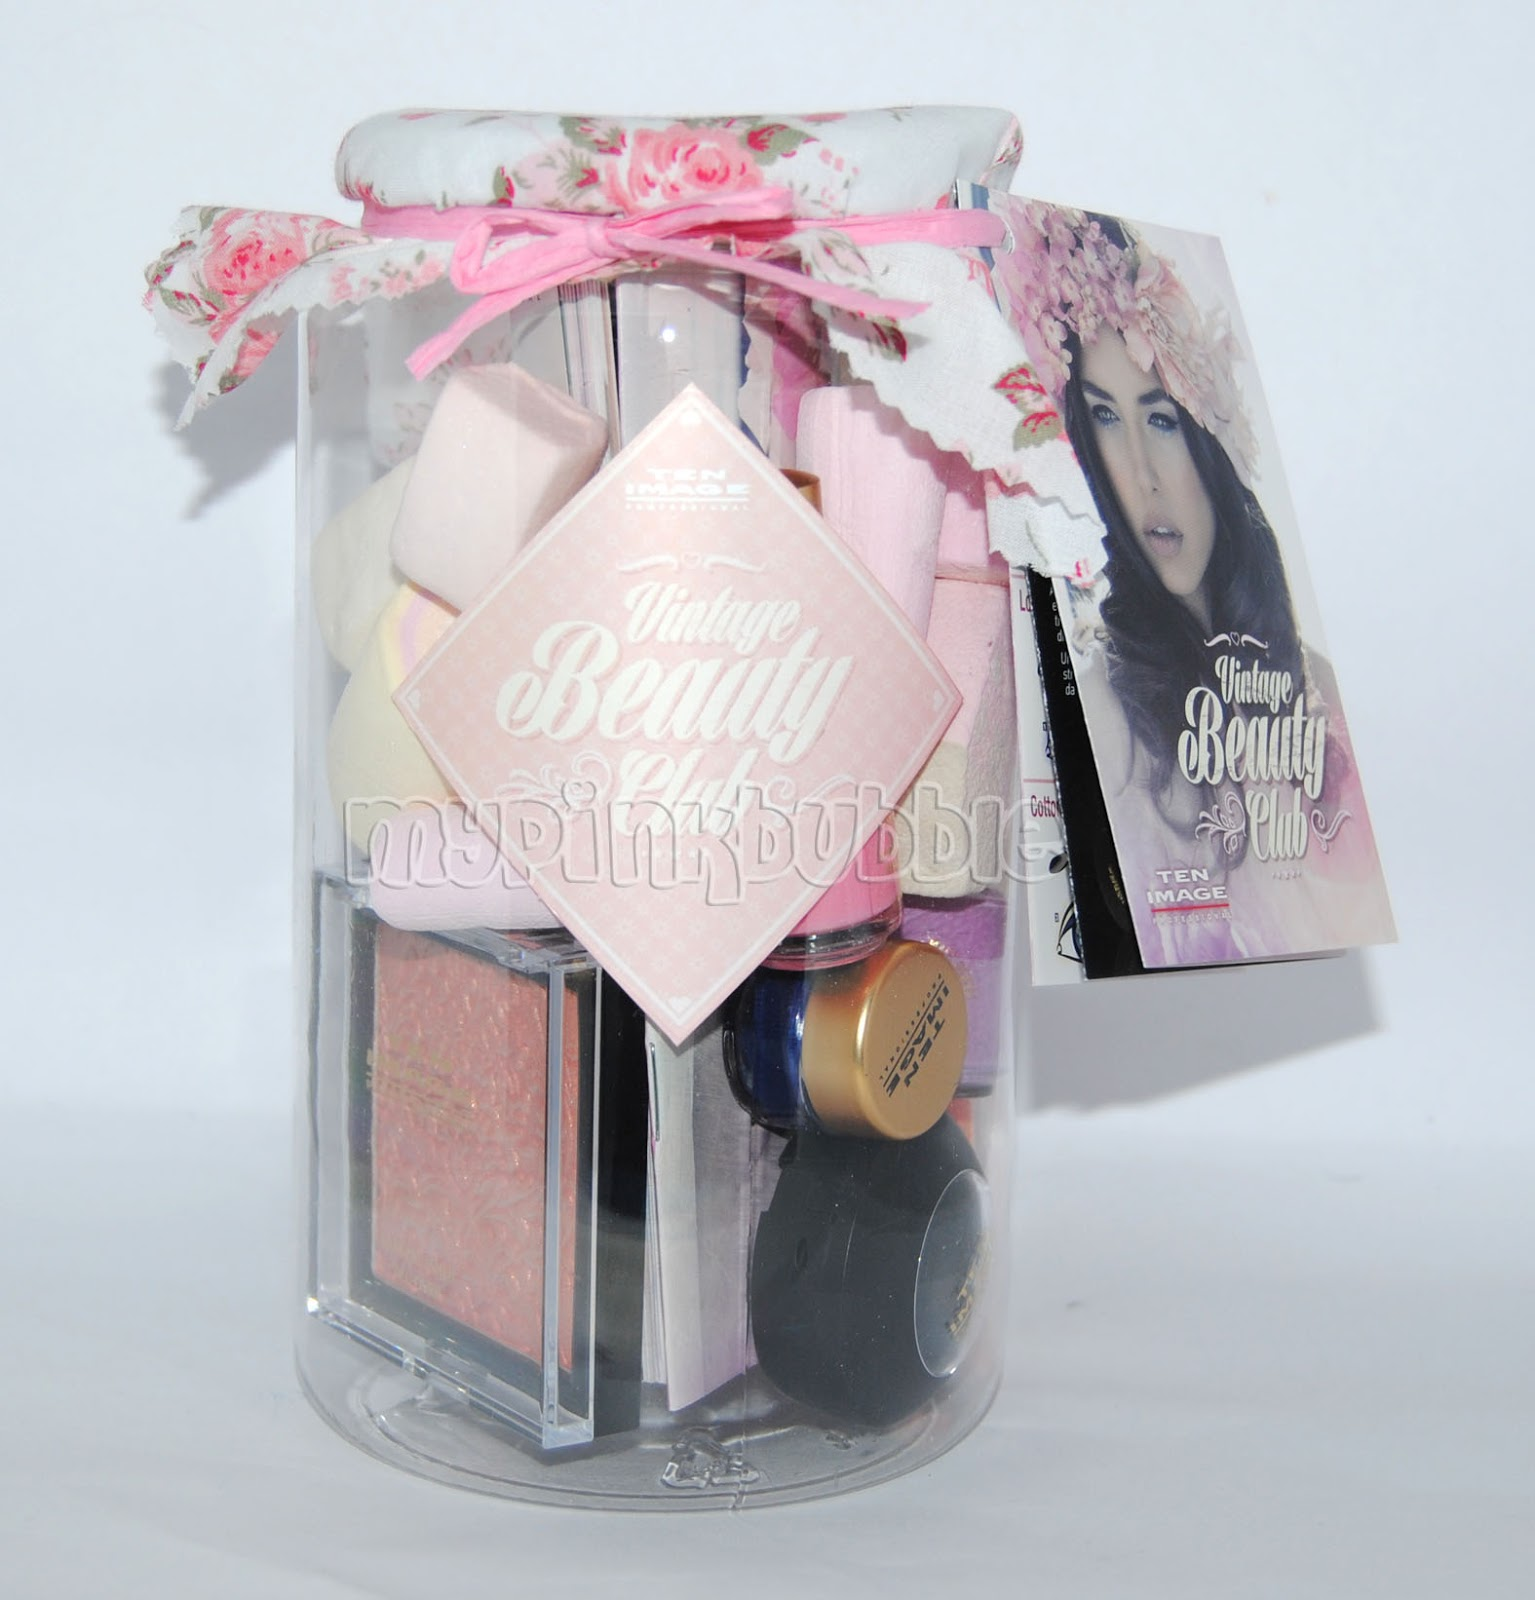 Ten image Vintage Beauty Club packaging